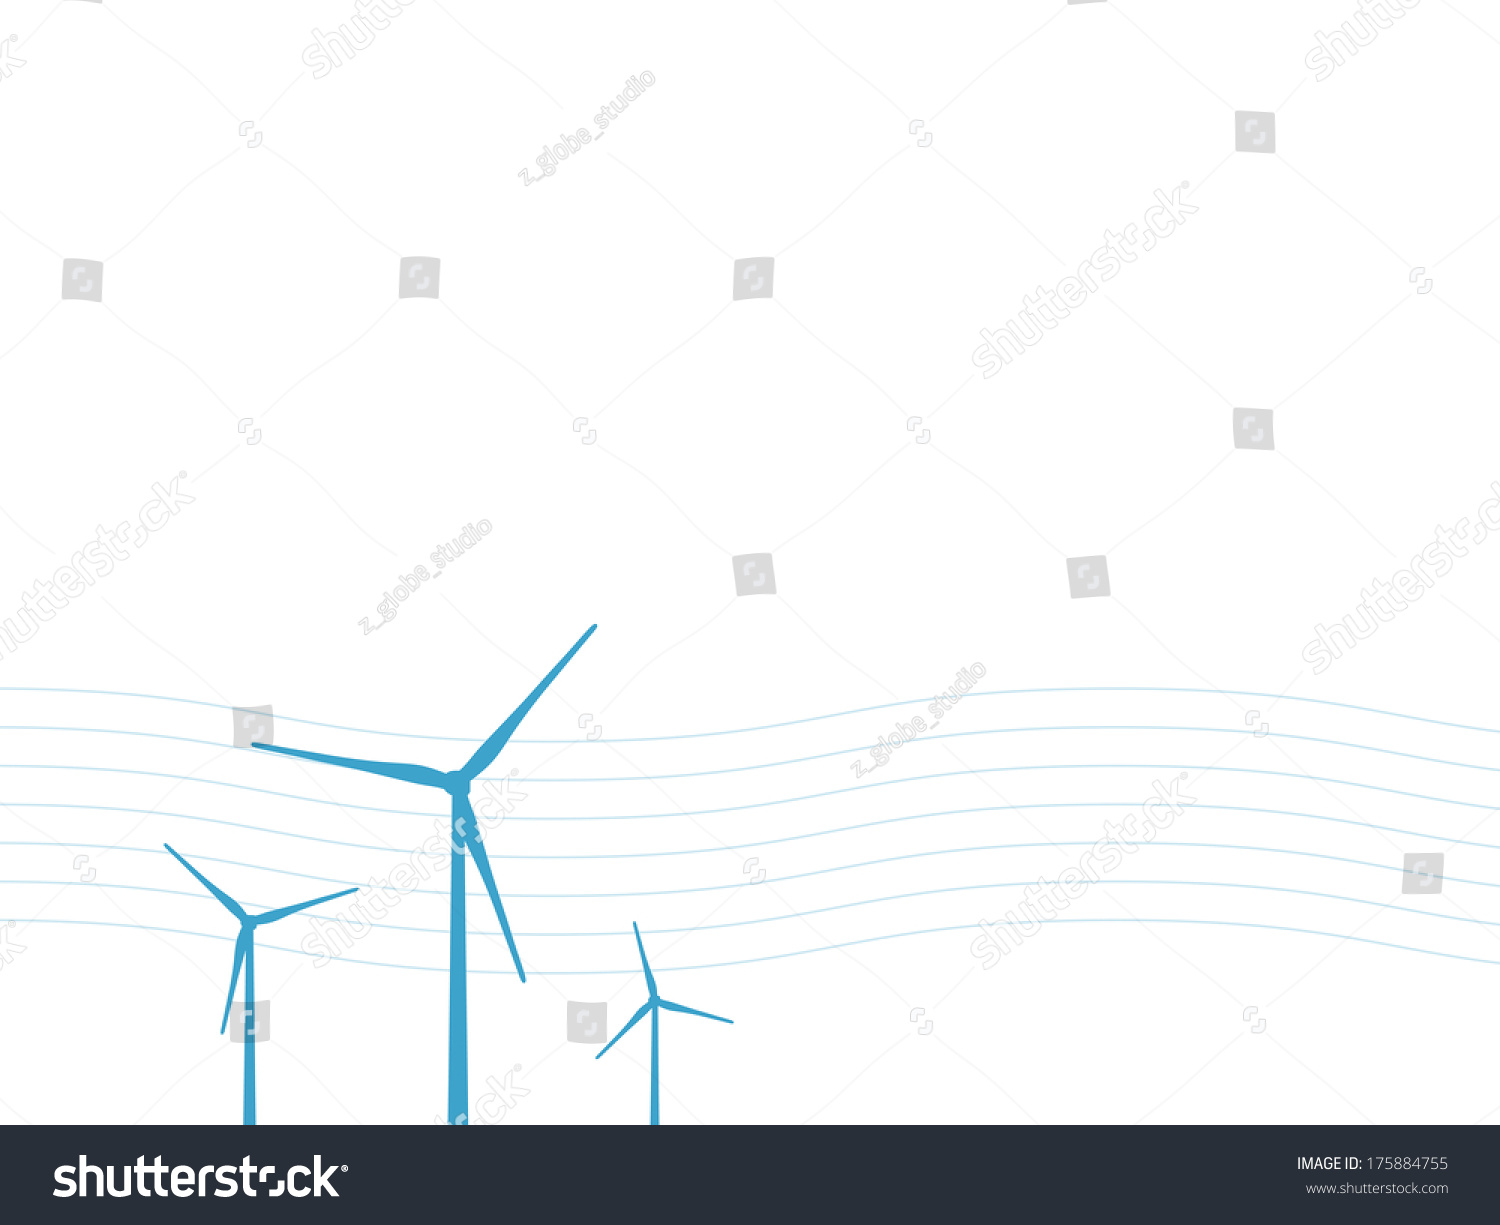 Wind Power Turbine Page Design Layout Stock Vector Royalty Free Diagram